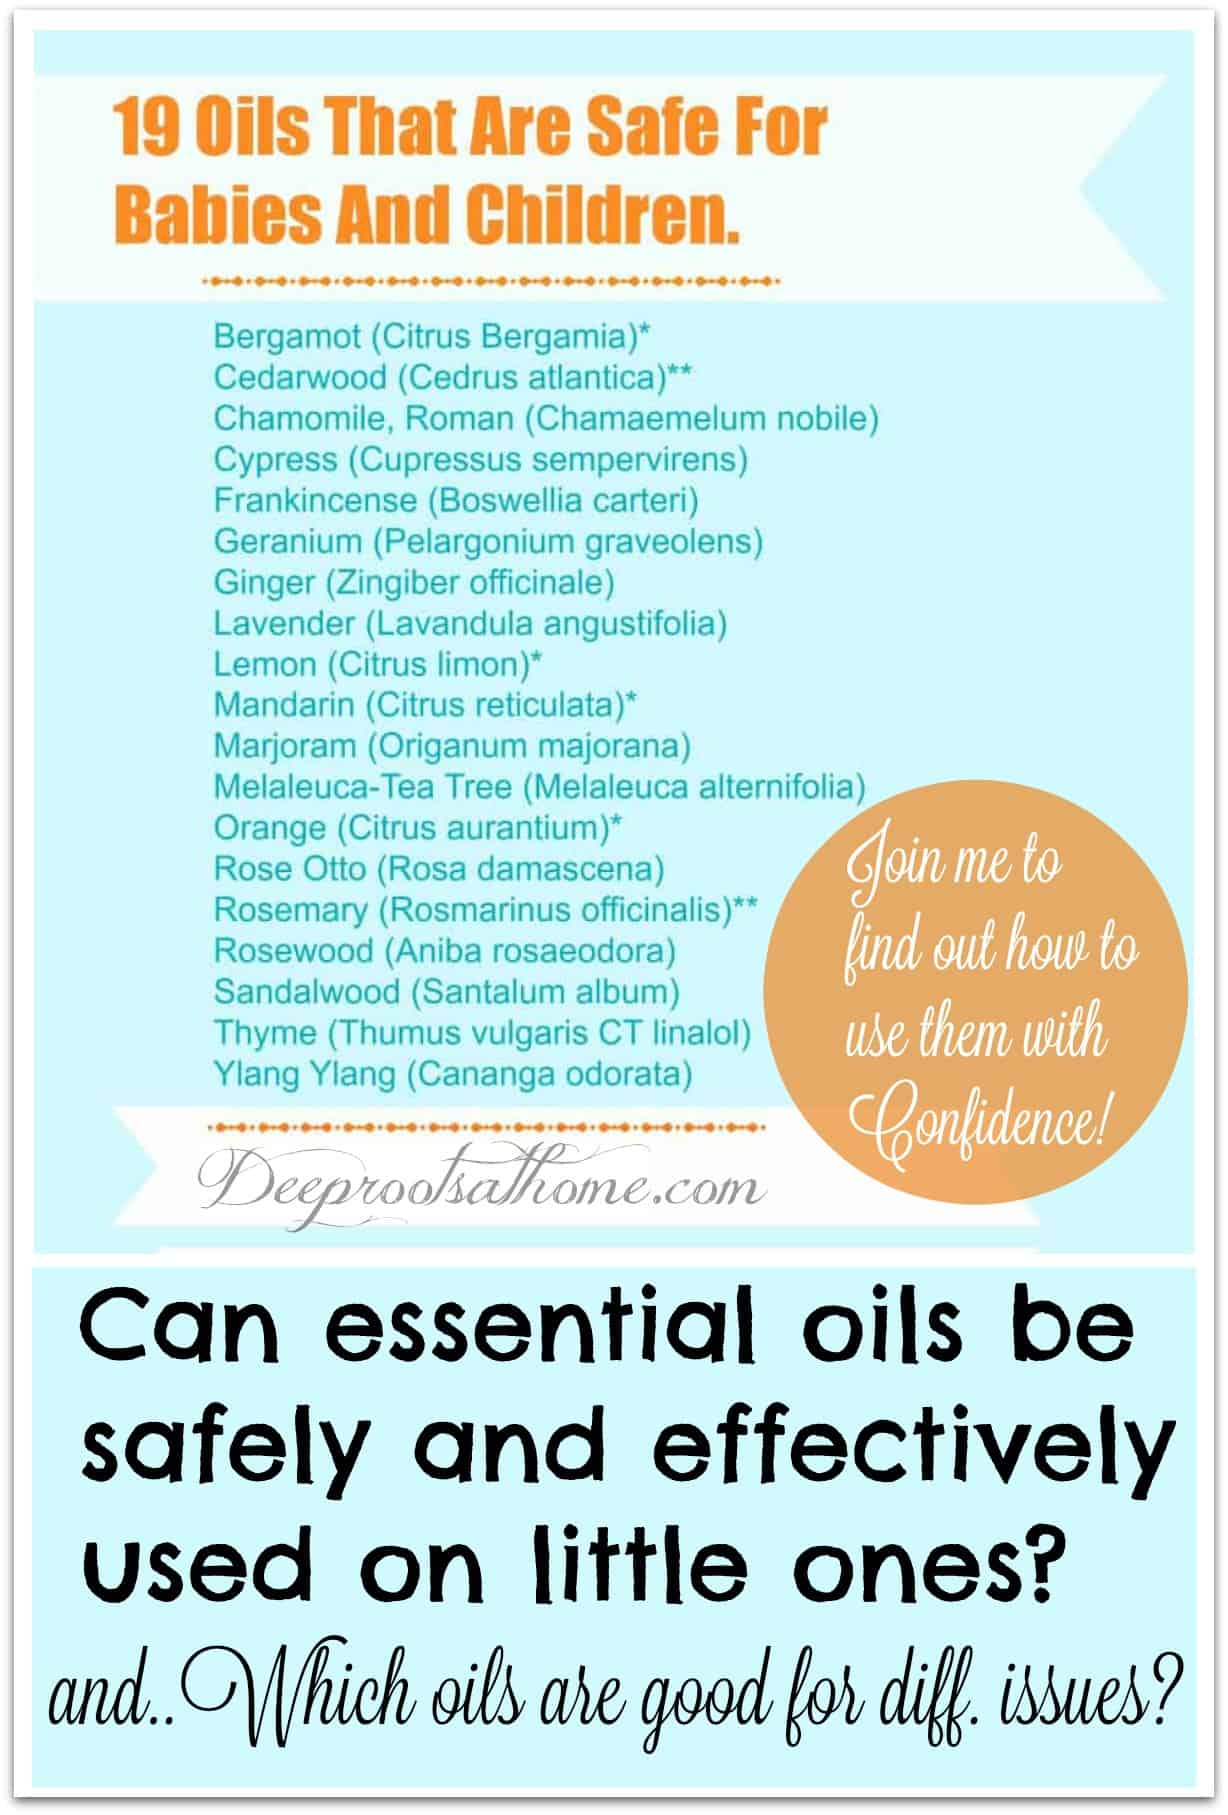 Use With Confidence: 19 Known Safe Essential Oils For Children & Babies. A list of well researched safe essential oils for kids and babies.